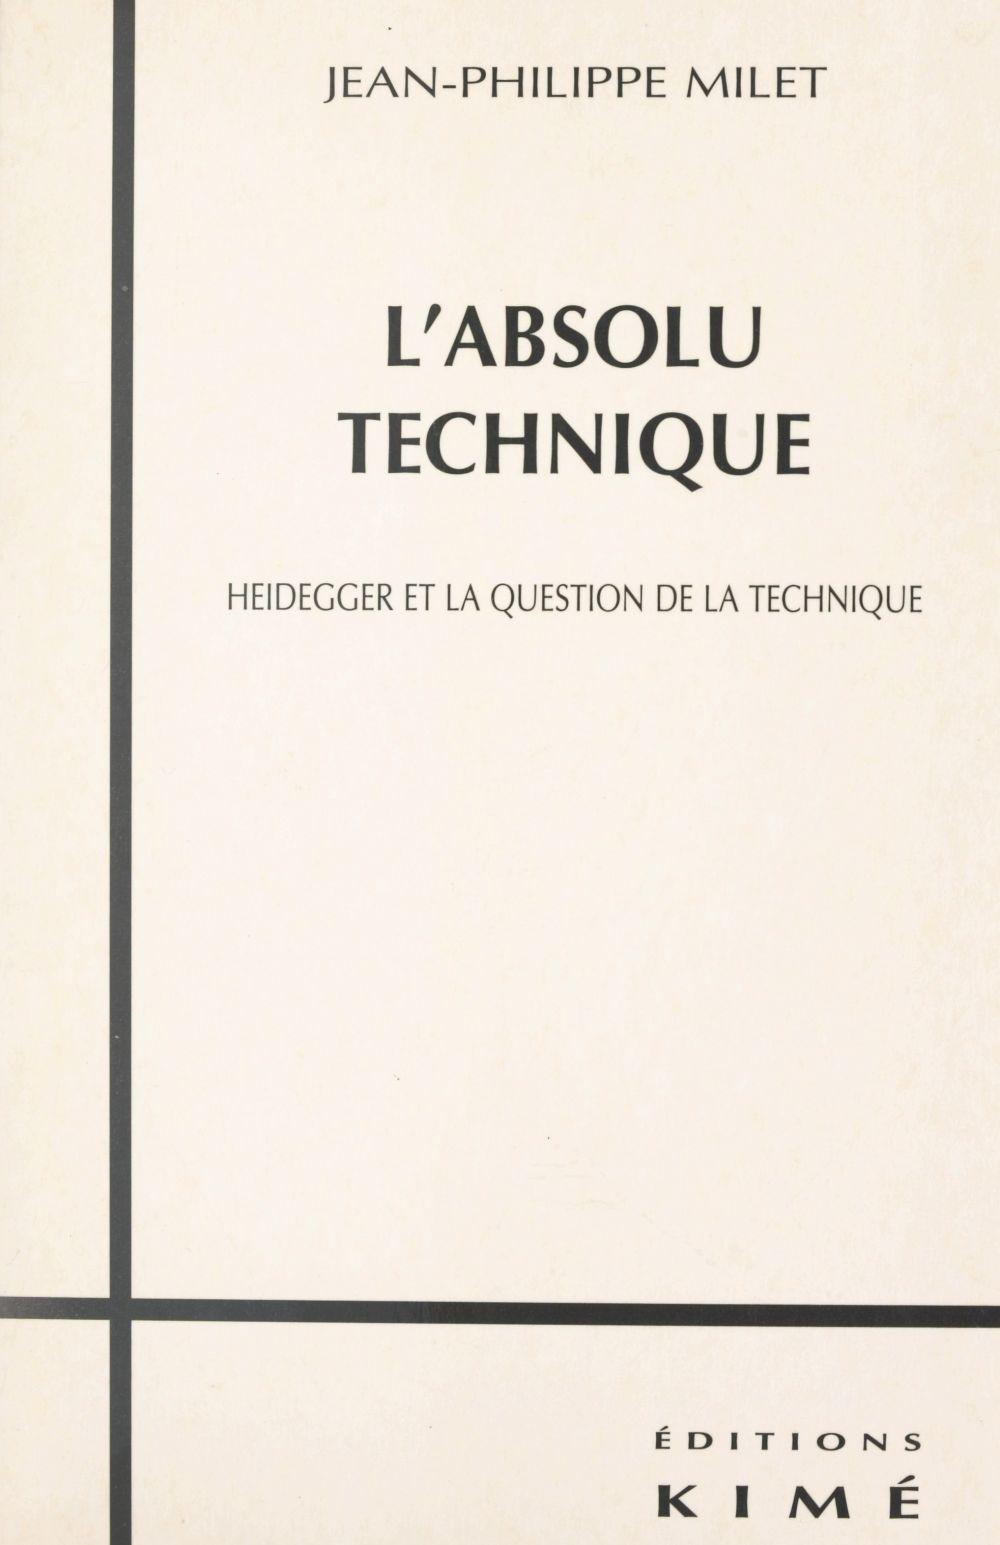 L'absolu technique